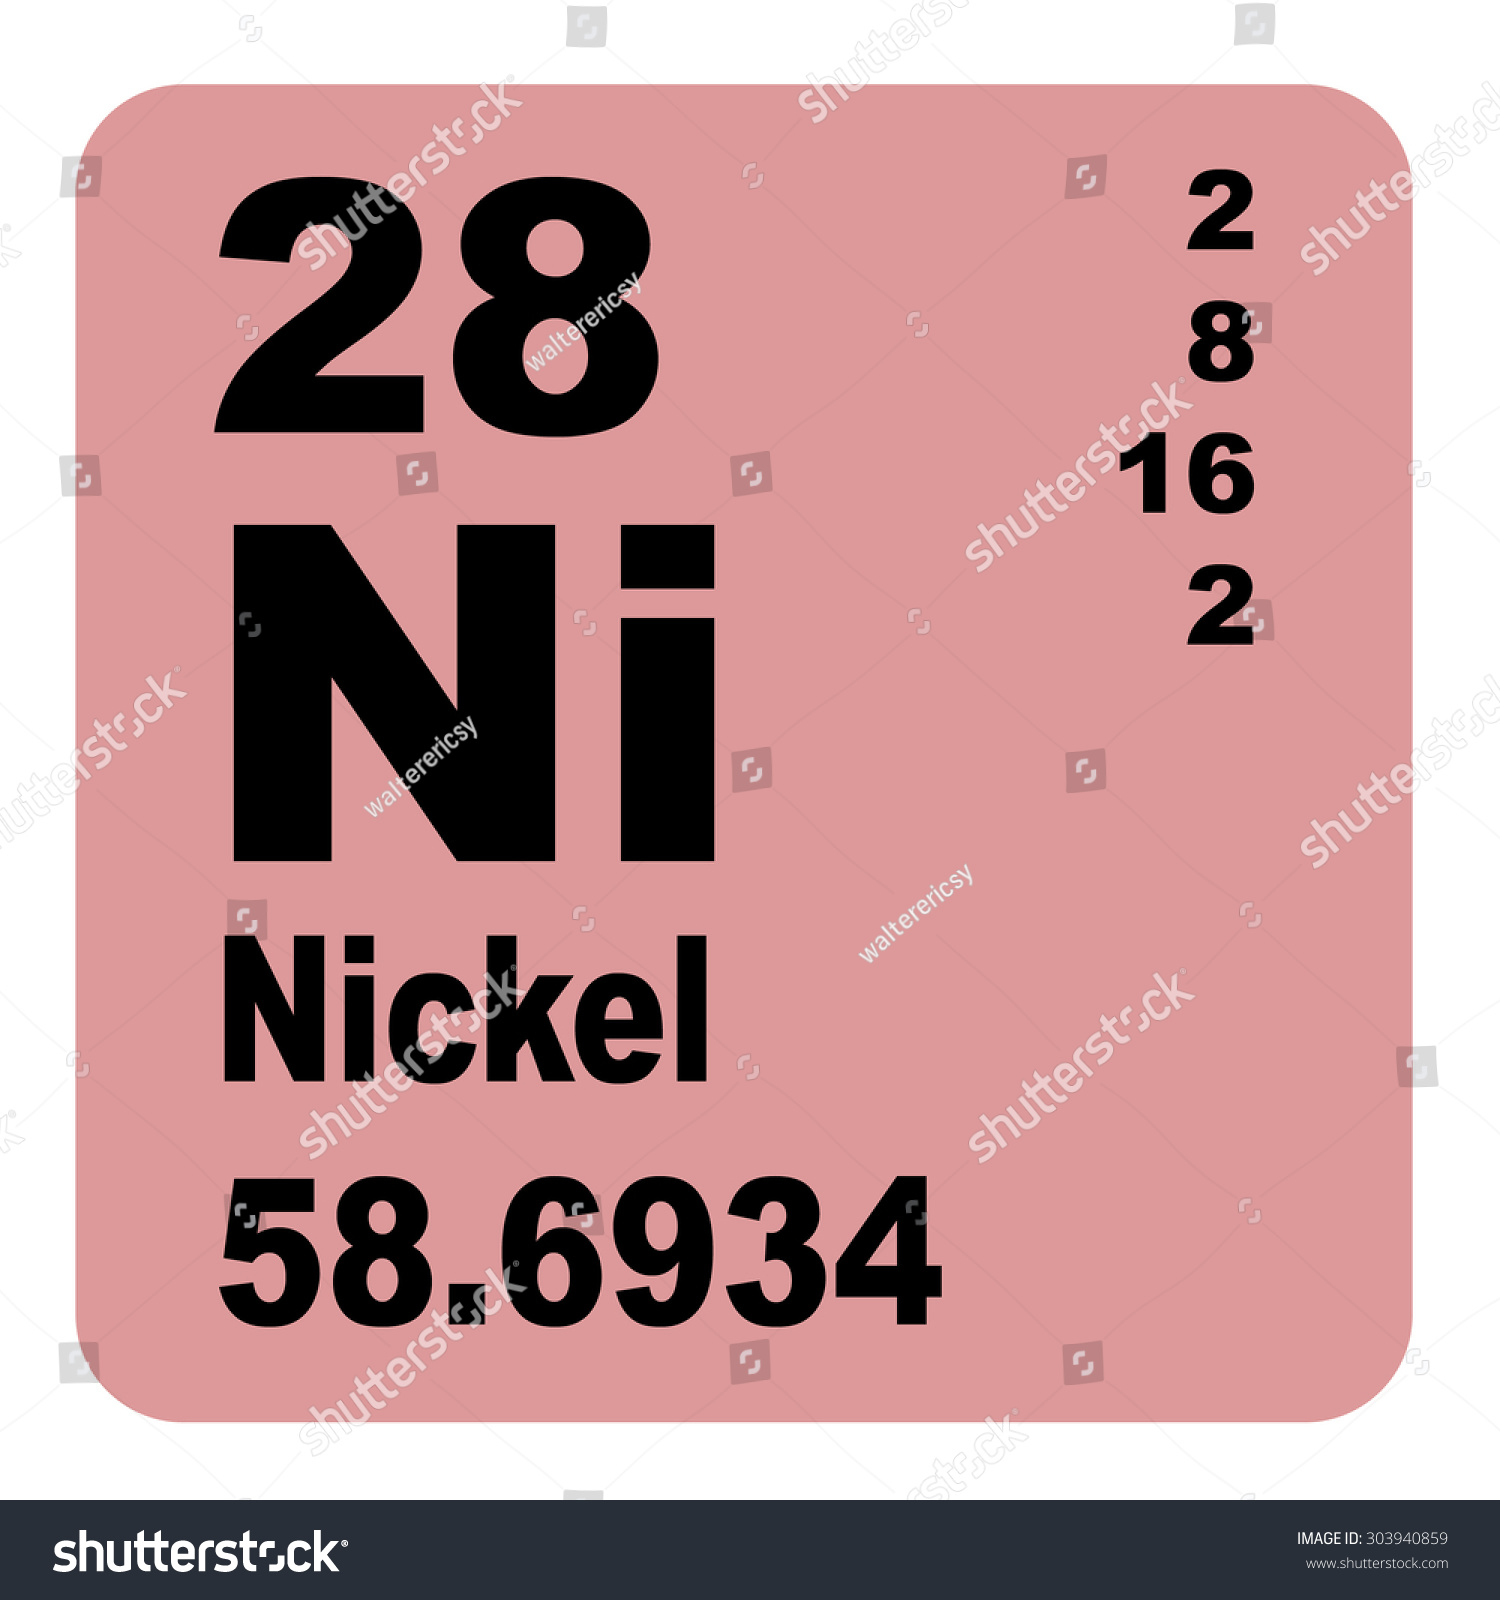 Nickel periodic table elements stock illustration 303940859 nickel periodic table of elements gamestrikefo Gallery